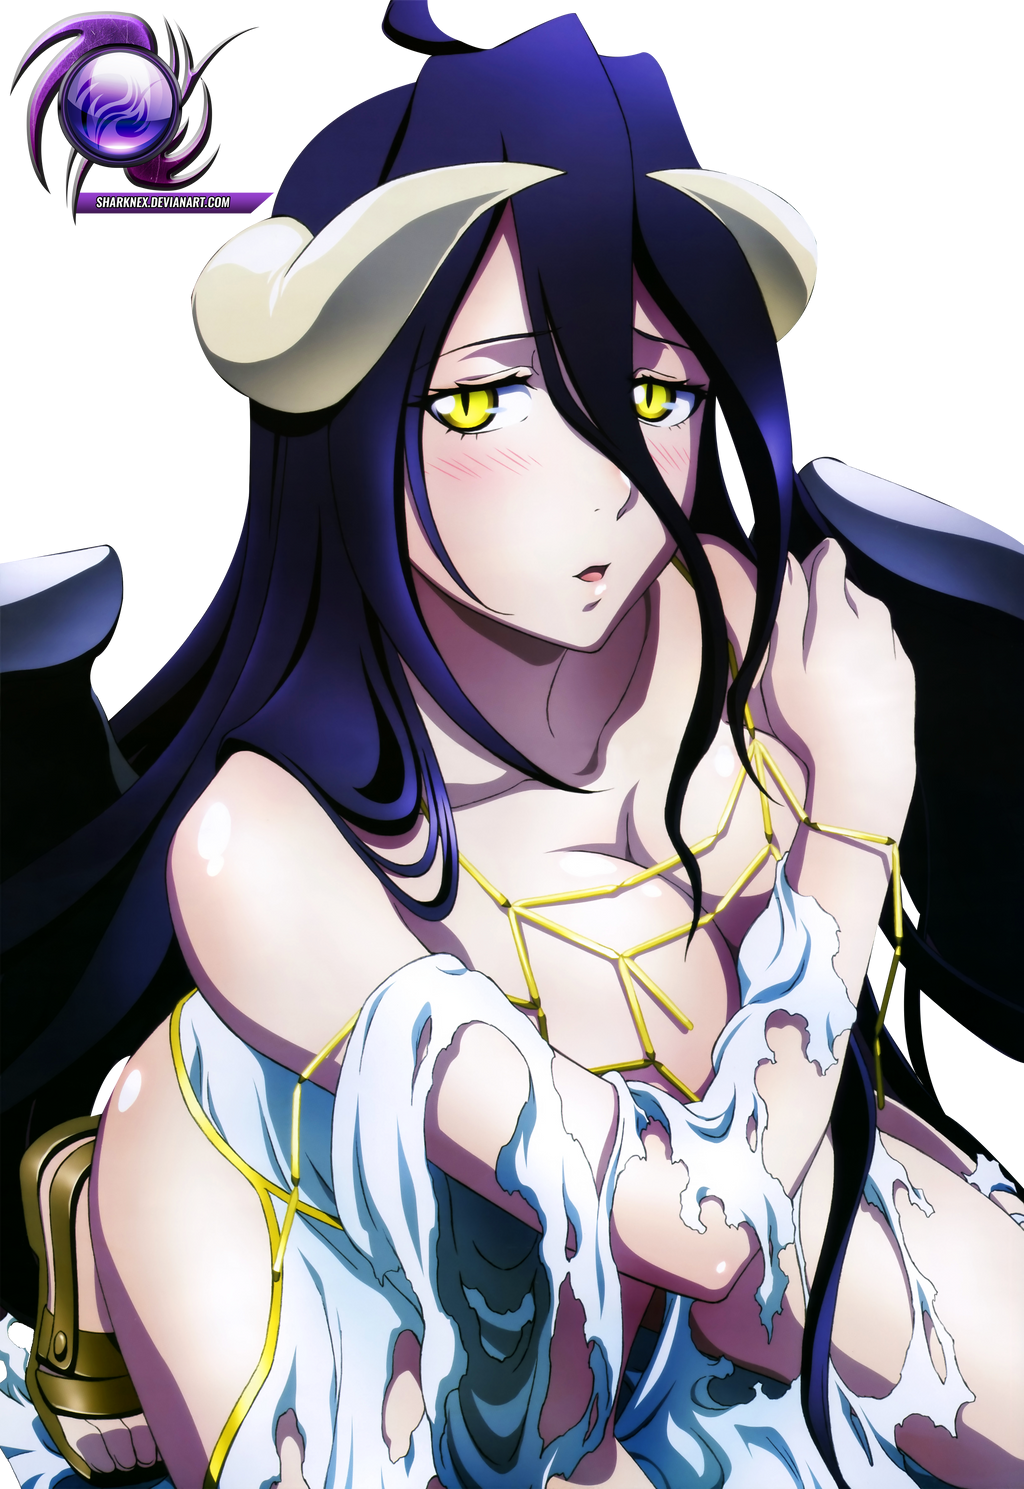 Overlord - Albedo render by  sharknex